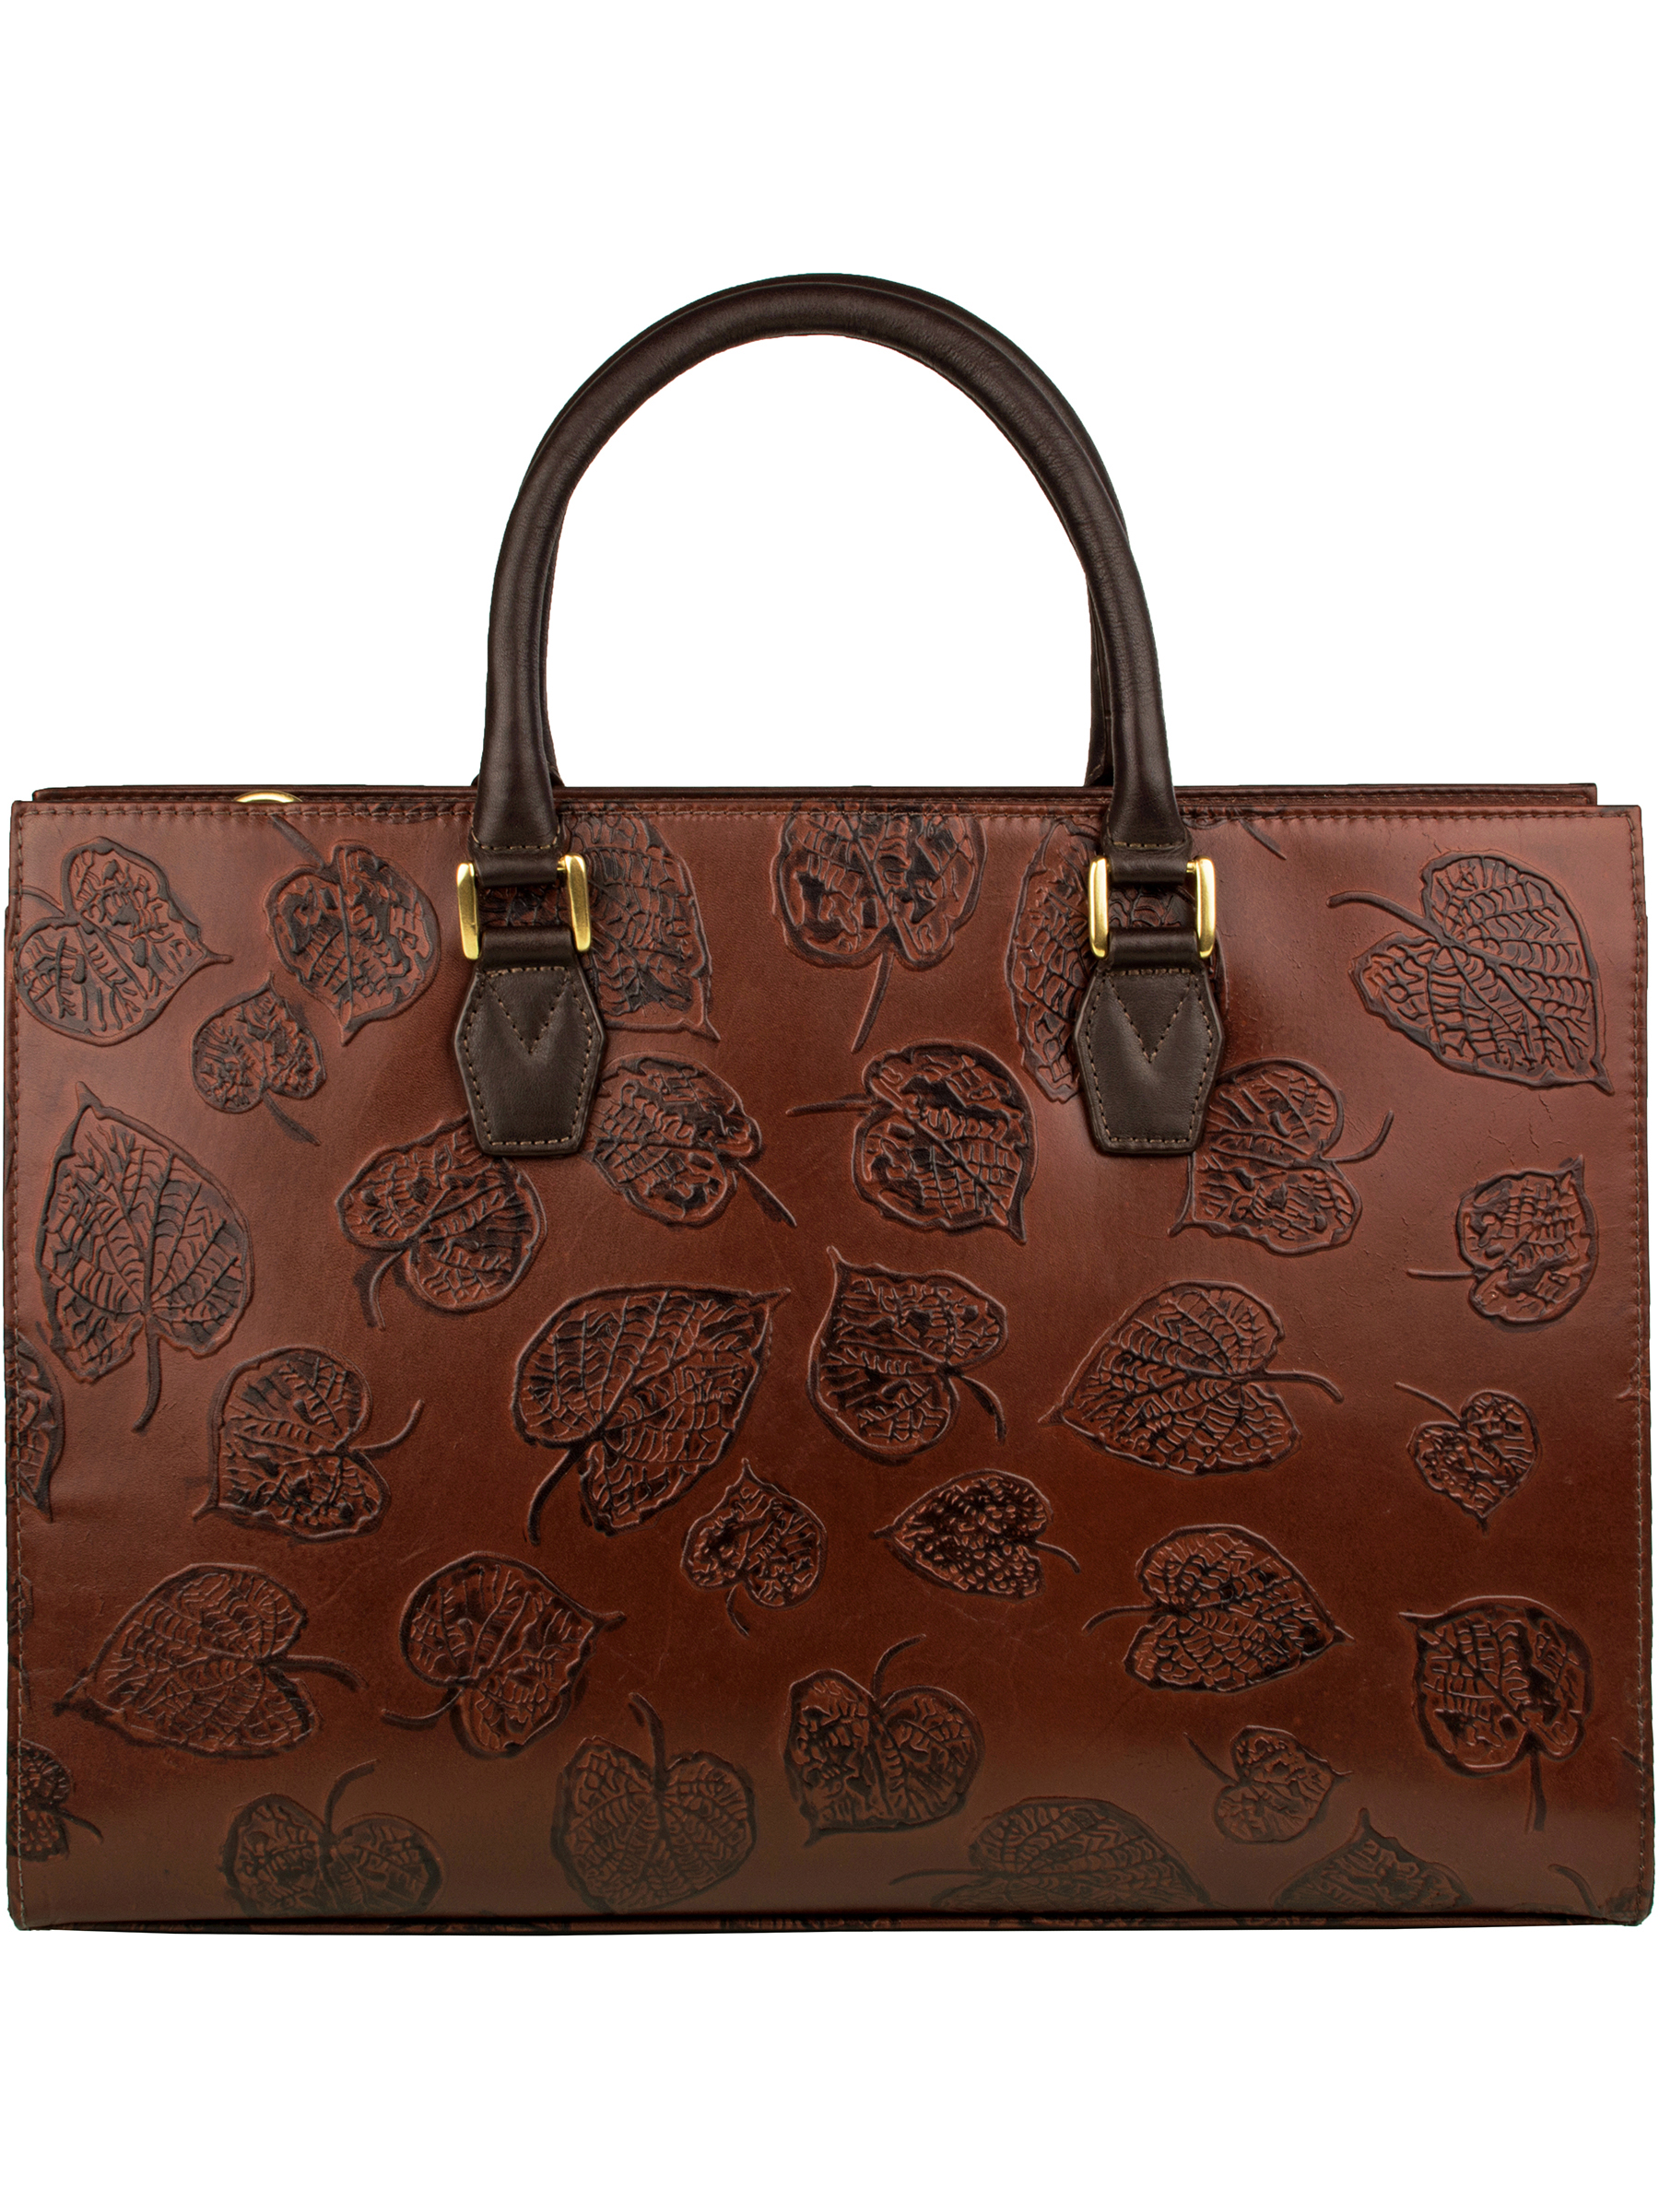 Brown embossed leather handbag